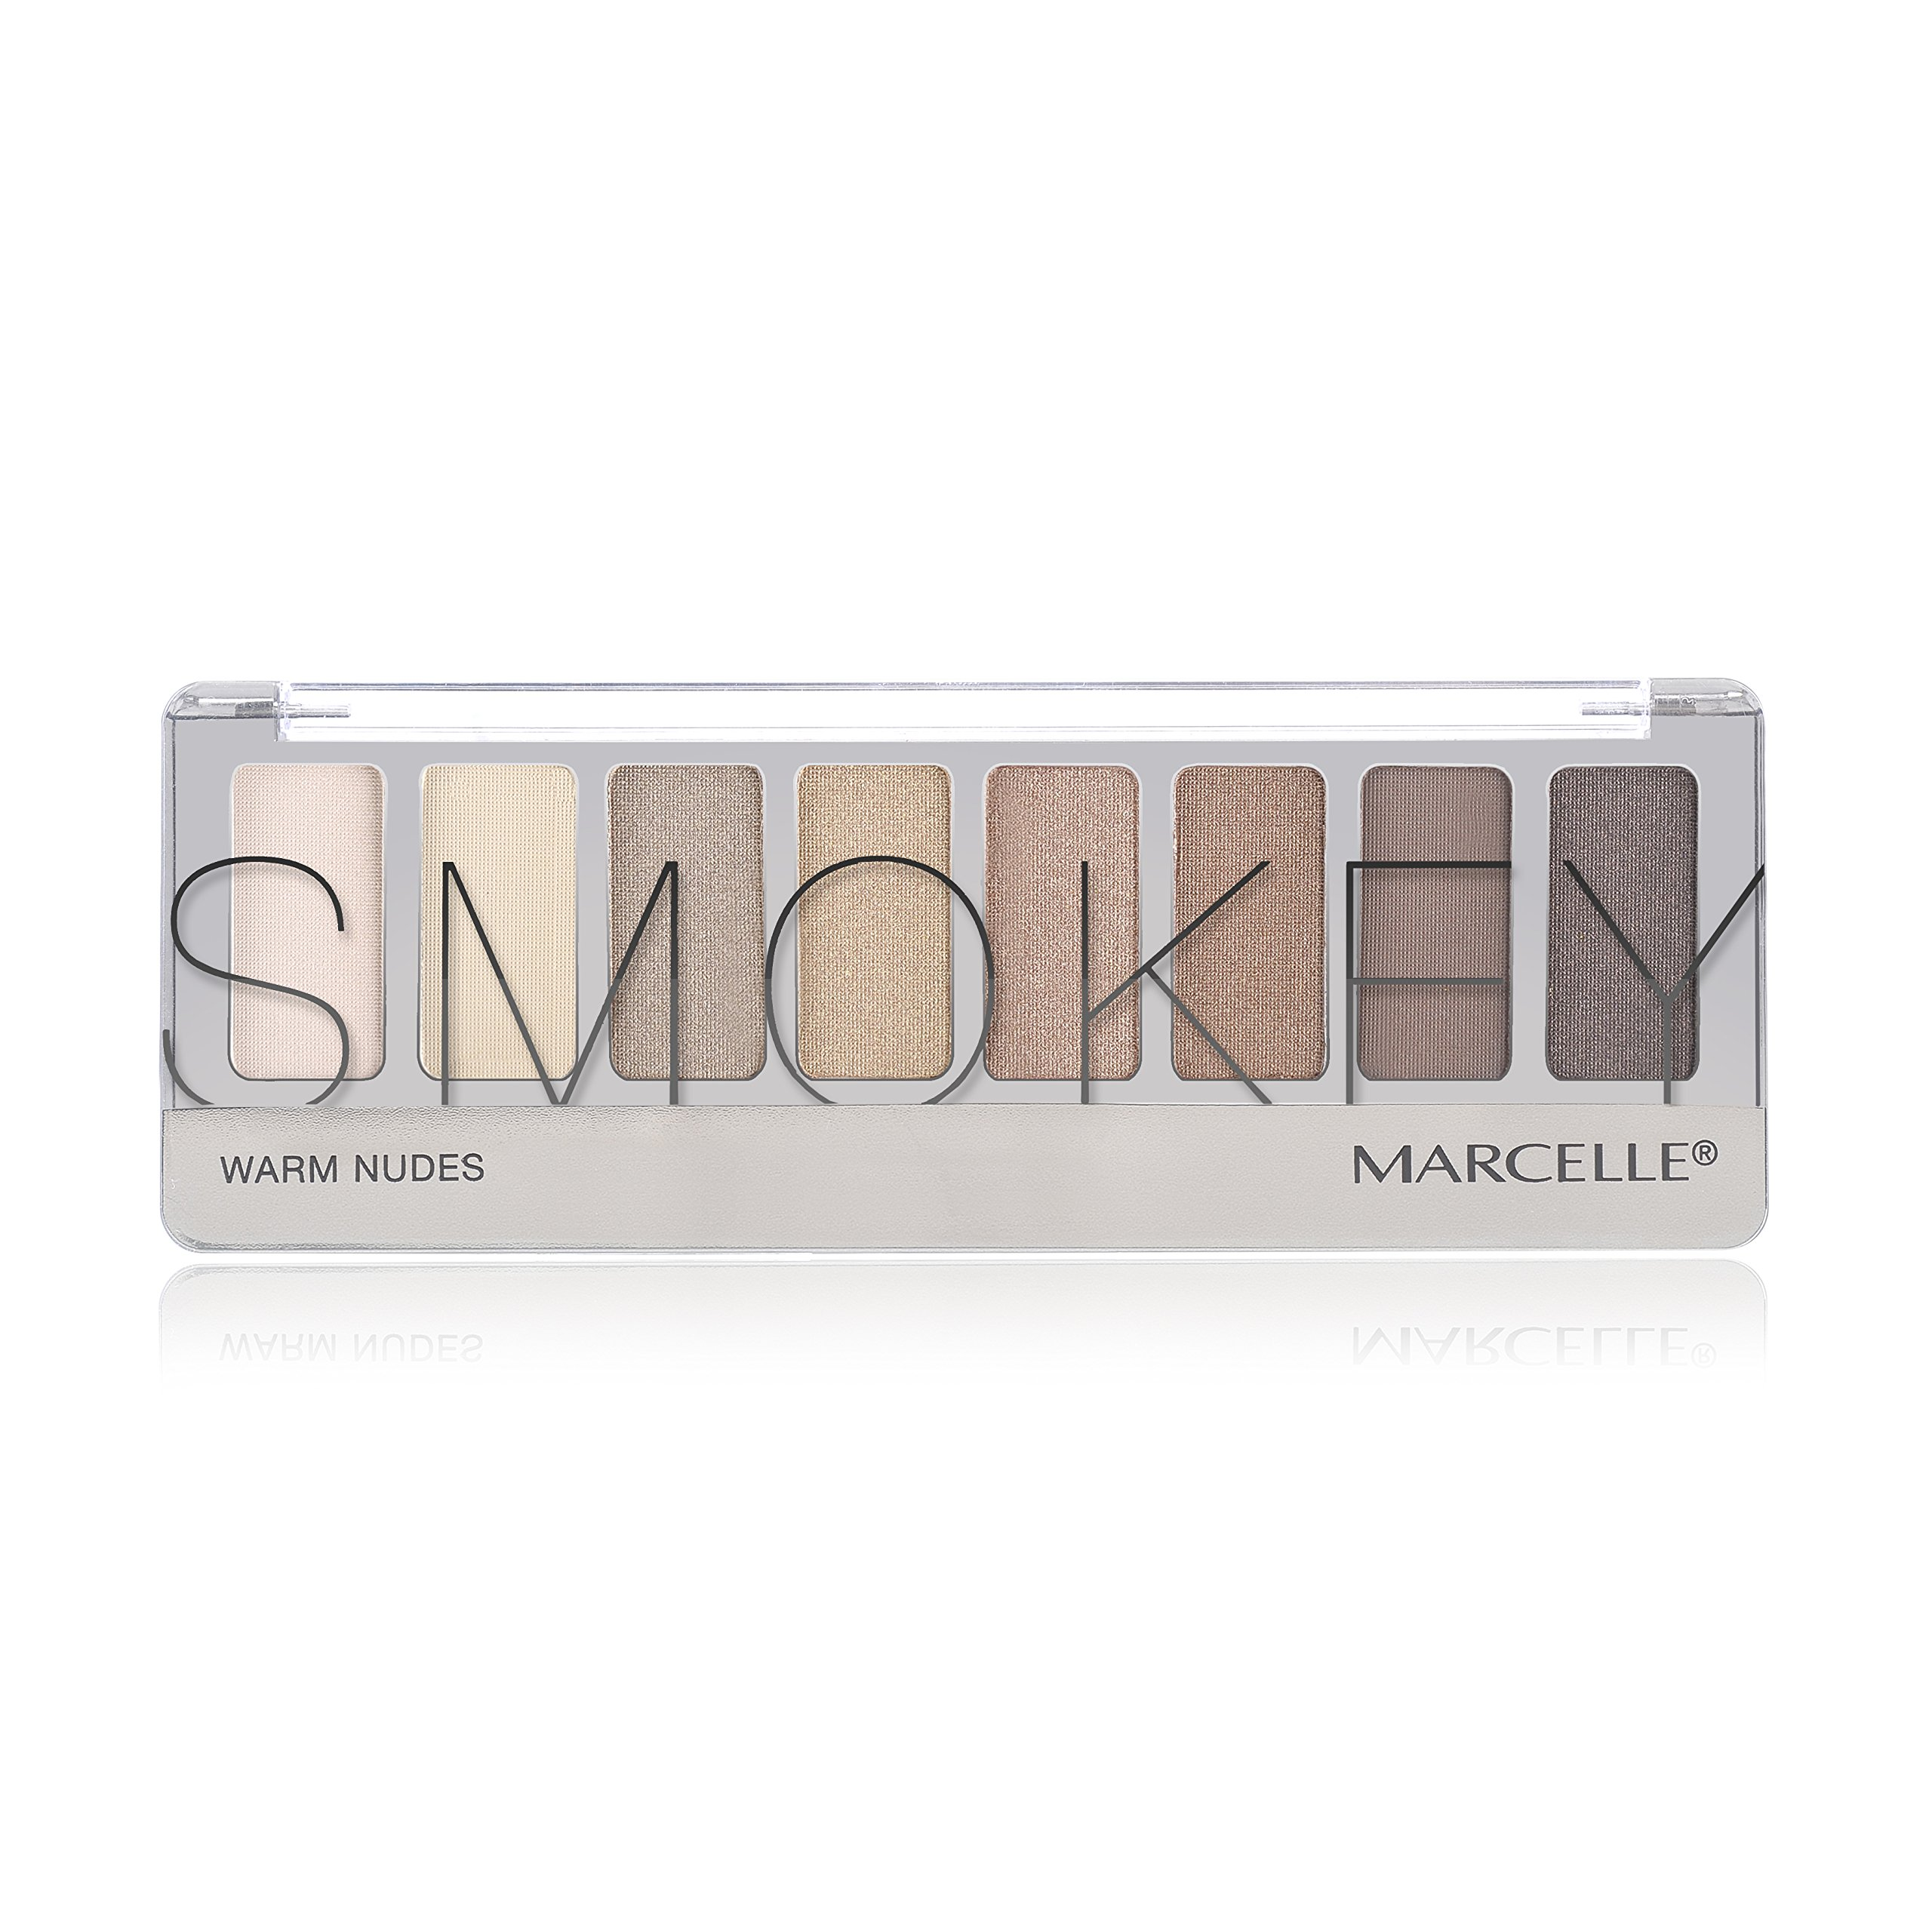 Marcelle Smokey Eyeshadow Palette, Warm Nudes, Hypoallergenic and Fragrance-Free, 0.29 oz